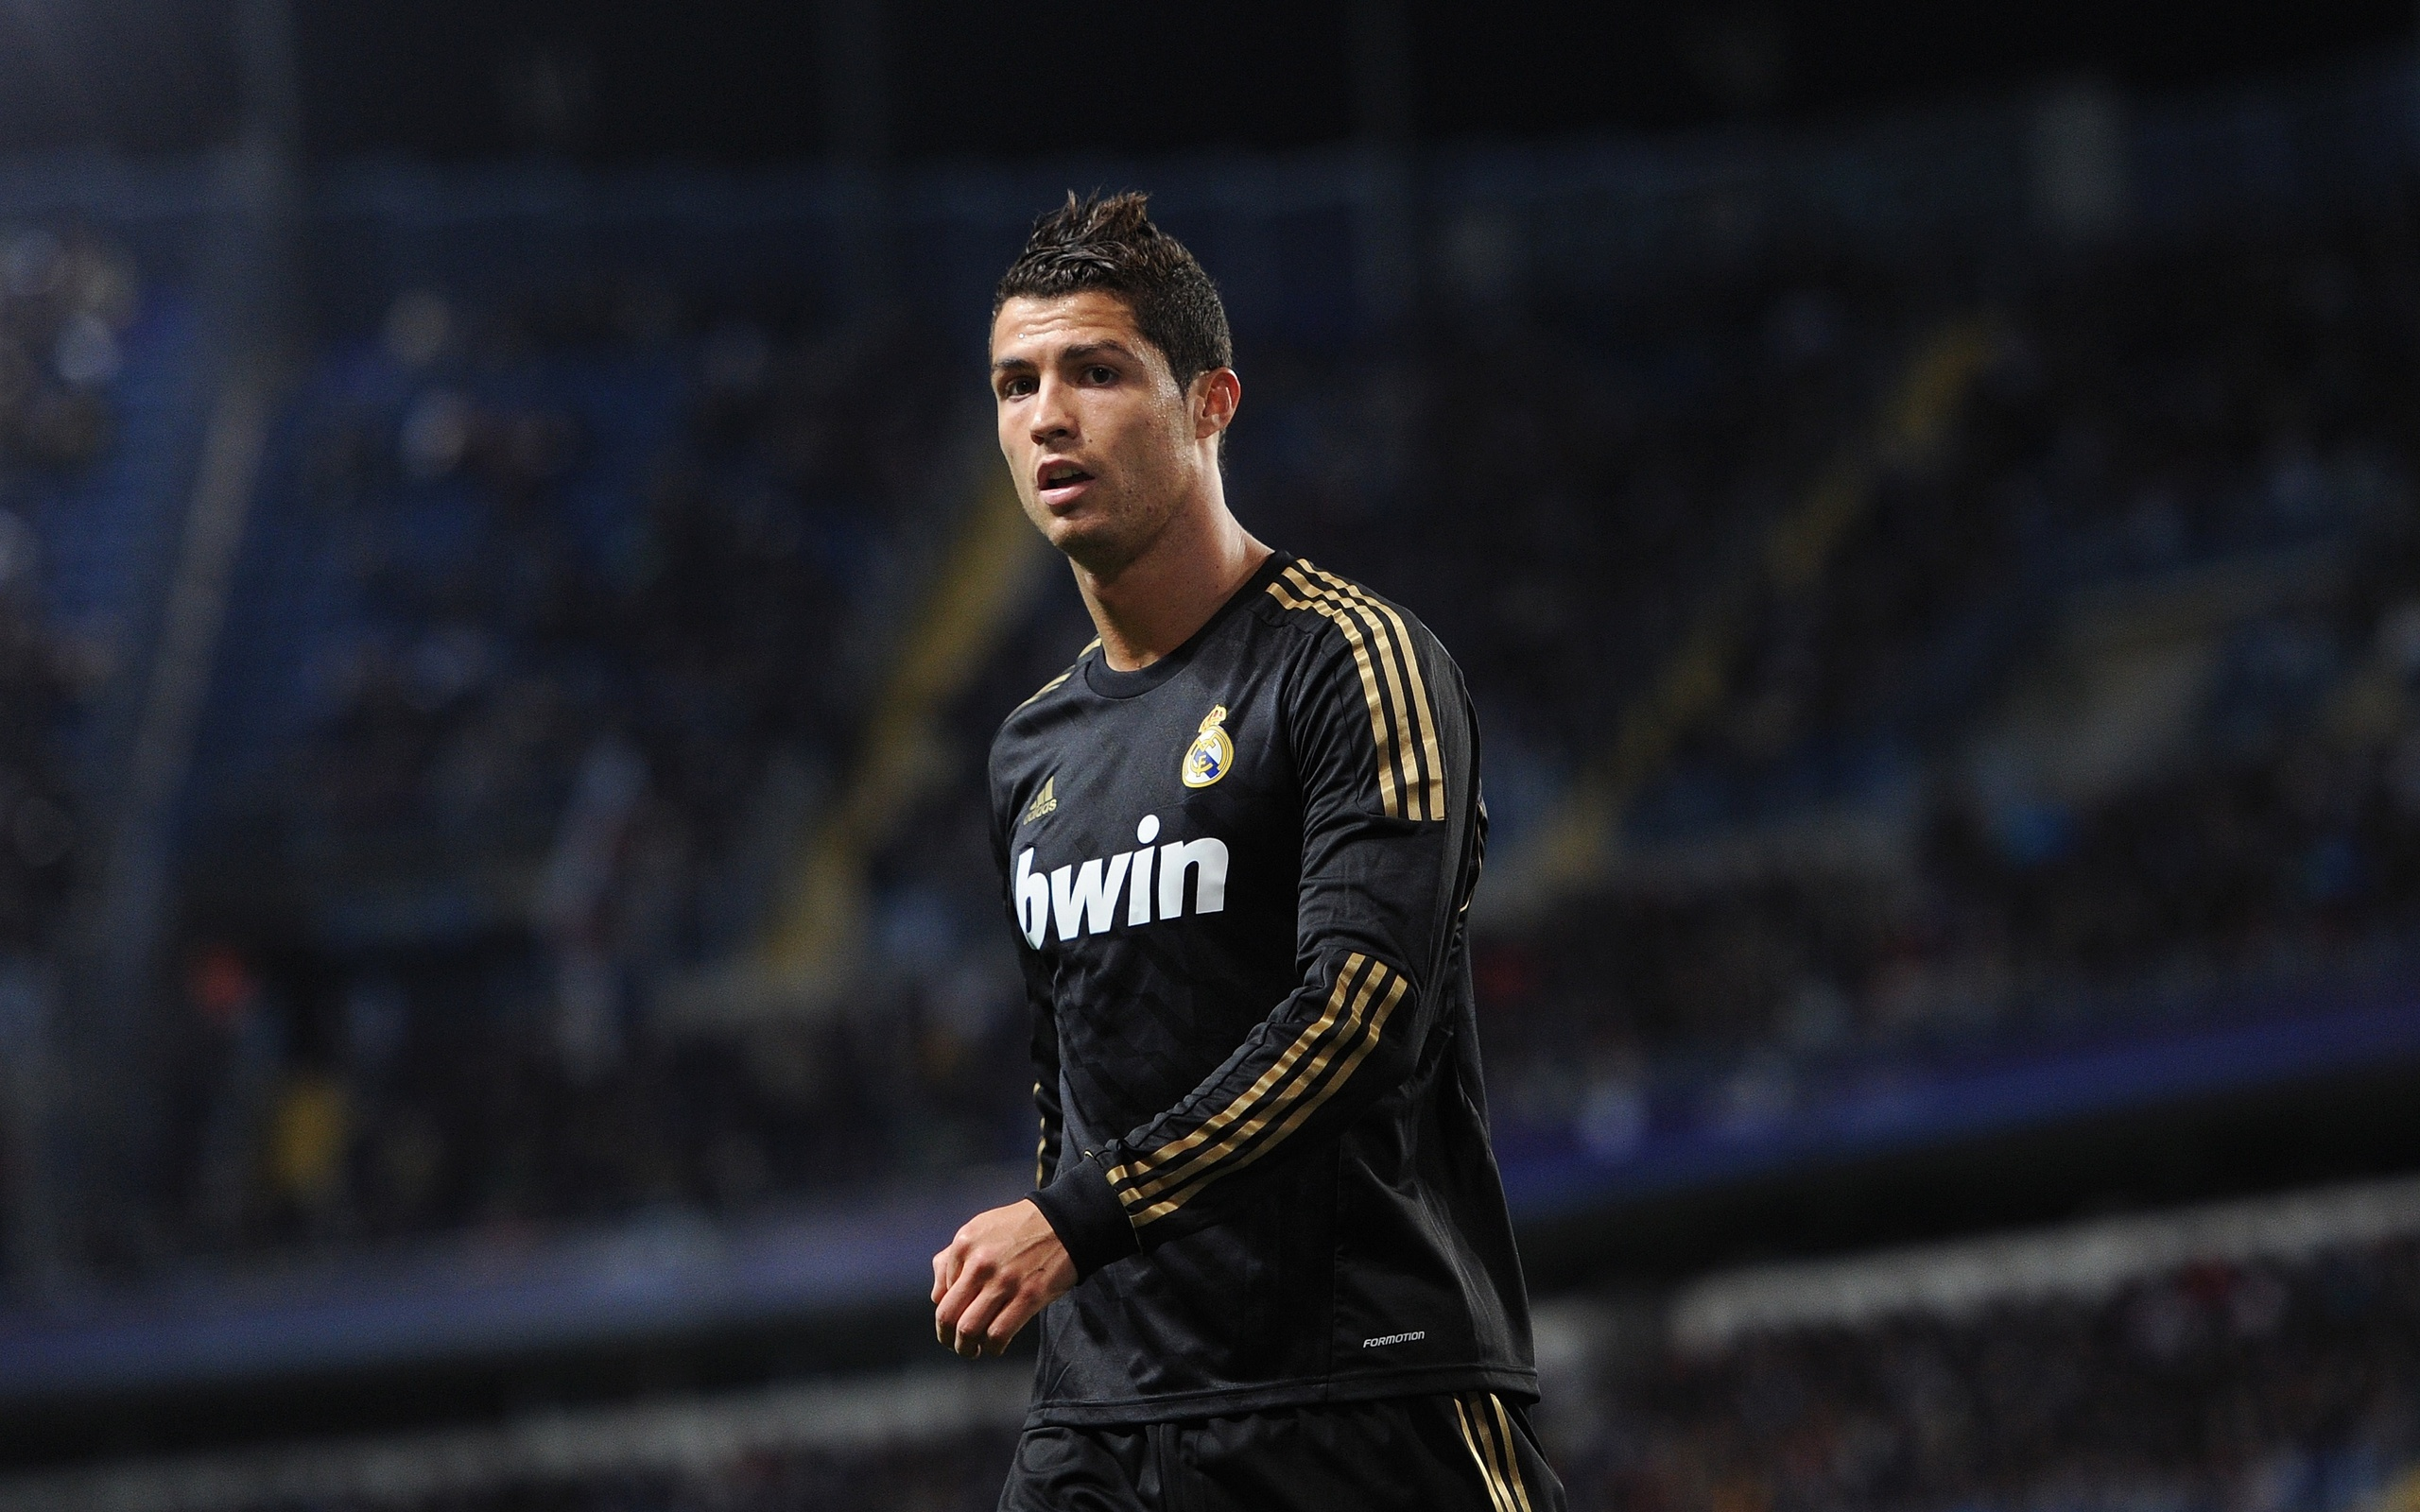 cristiano ronaldo full hd wallpaper and background image | 2560x1600